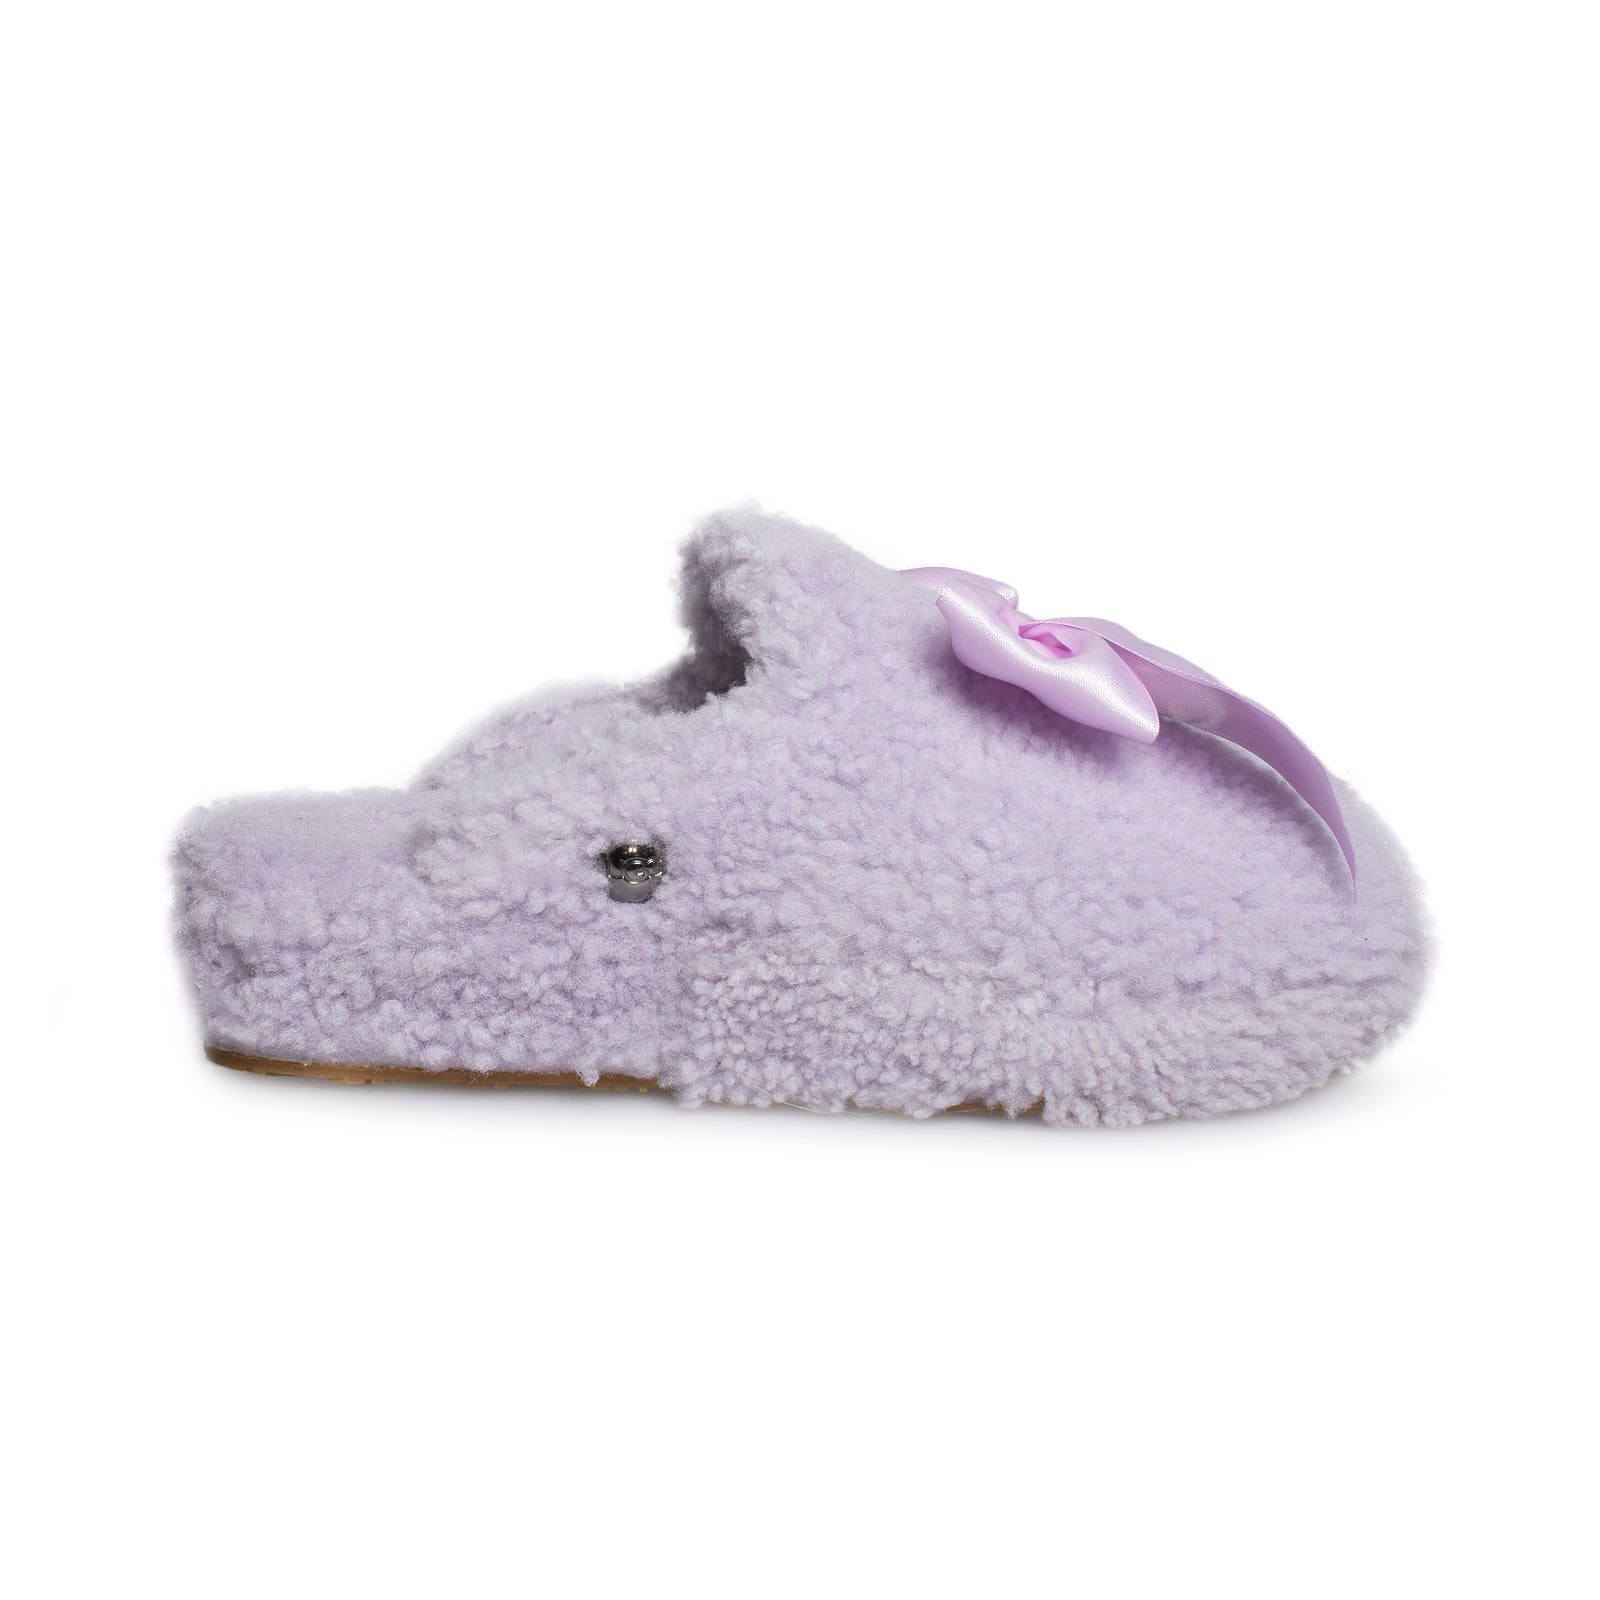 ugg addison bow slipper nz